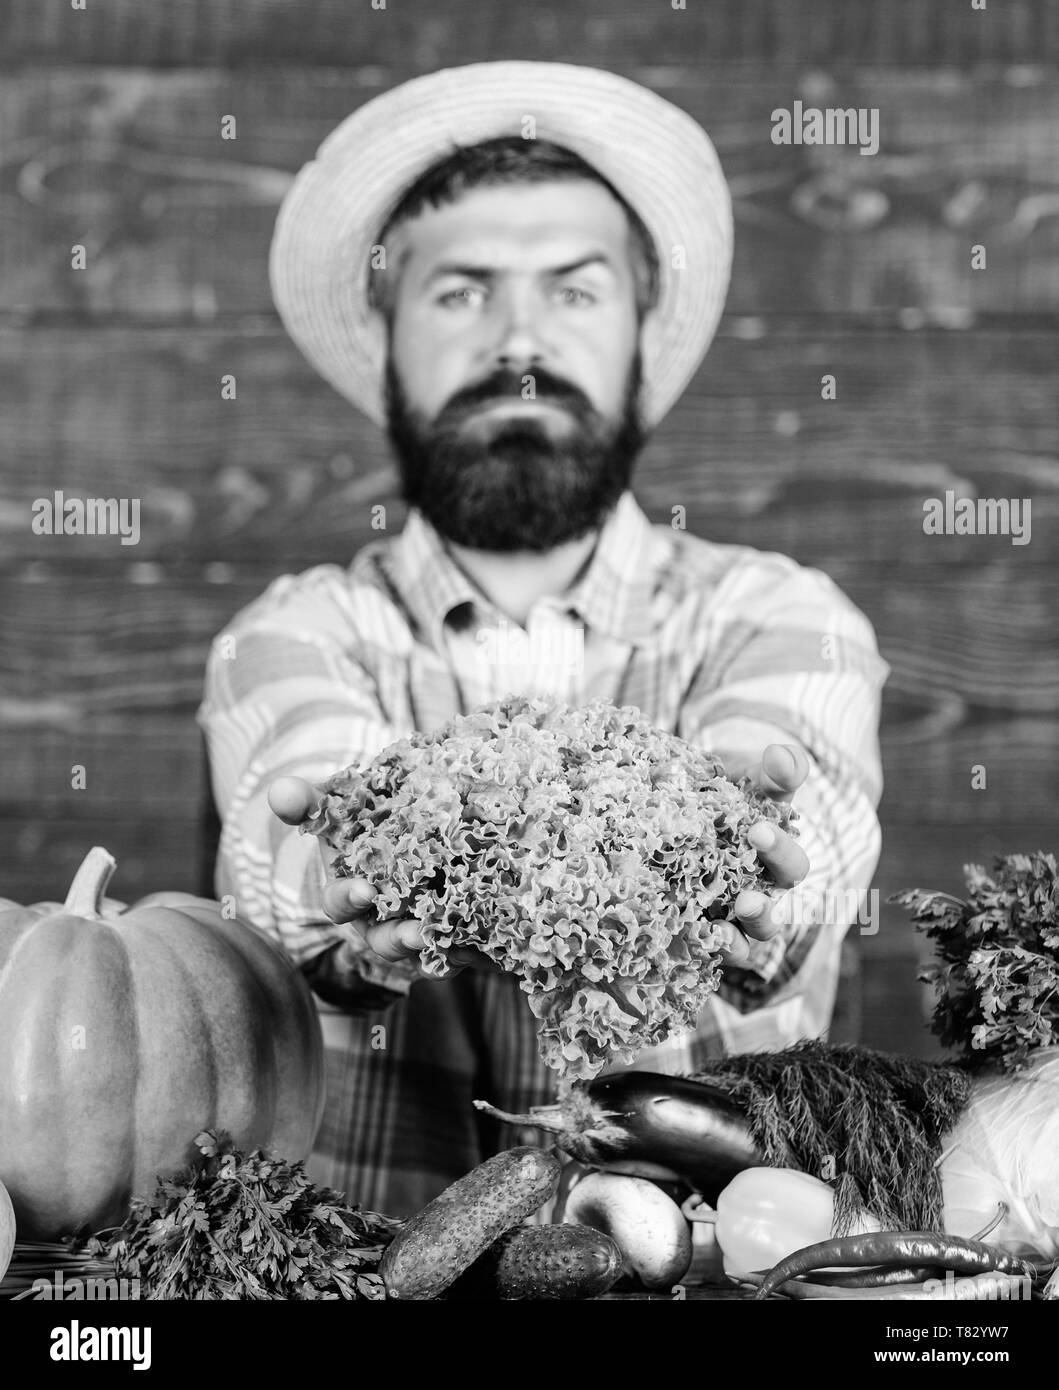 Man mature bearded farmer hold vegetables wooden background. Sell vegetables. Local market. Locally grown crops concept. Buy vegetables local farm. Typical farmer guy. Farm market harvest festival. - Stock Image